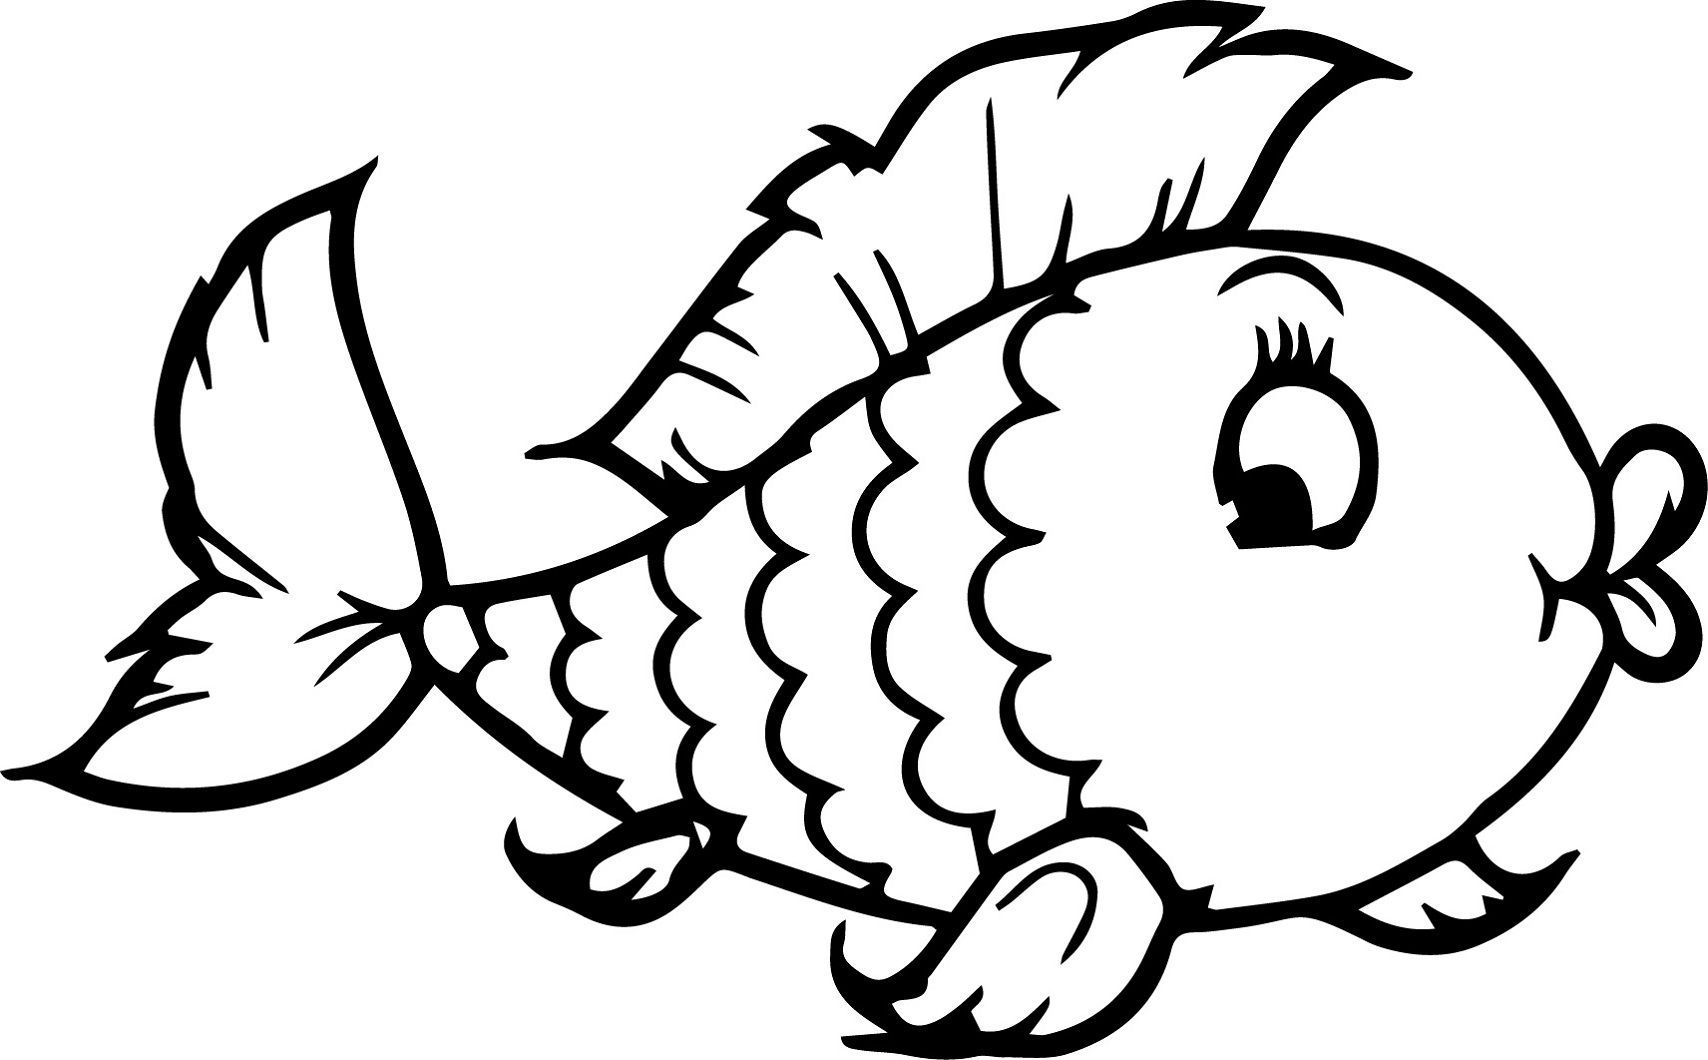 Color Pages Of Fish Kids Learning Acti Acti Color Fish Kids Learning Pages In 2020 Fish Coloring Page Cartoon Coloring Pages Owl Coloring Pages